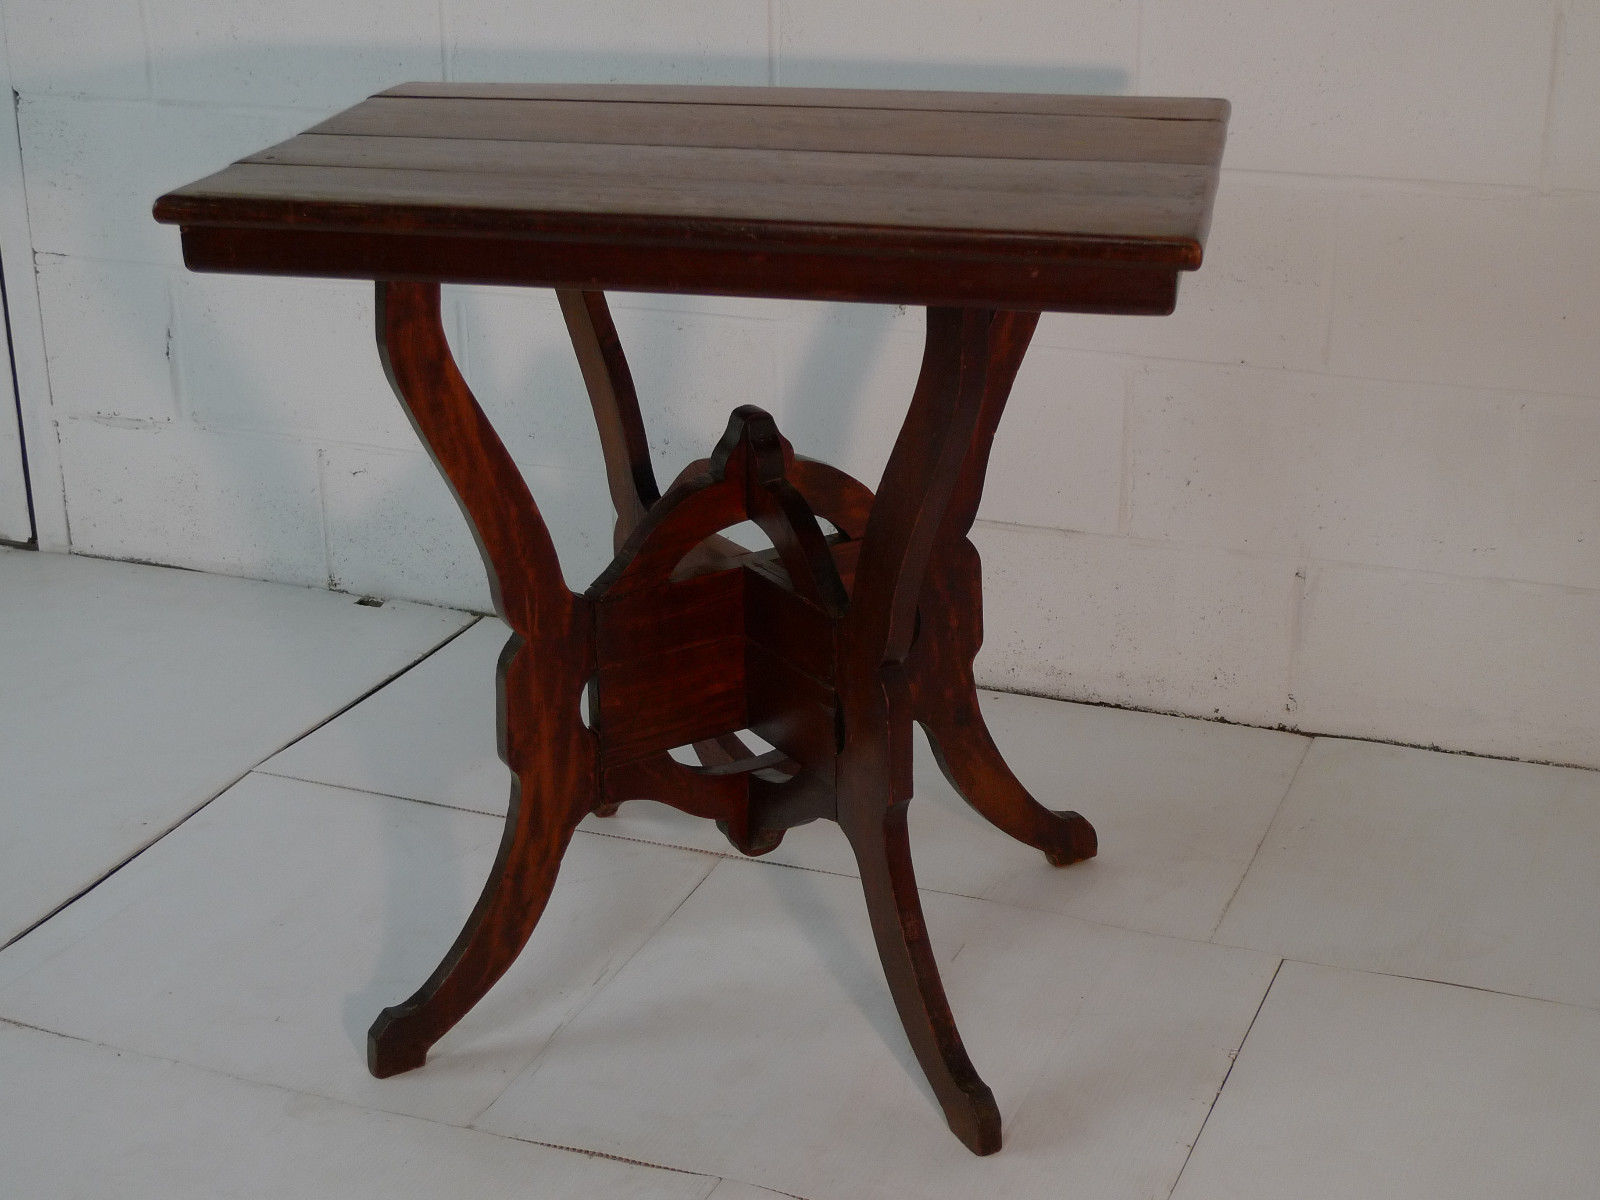 Victorian Cherry Rustic Scrolled Plant Stand Lamp Table Antique